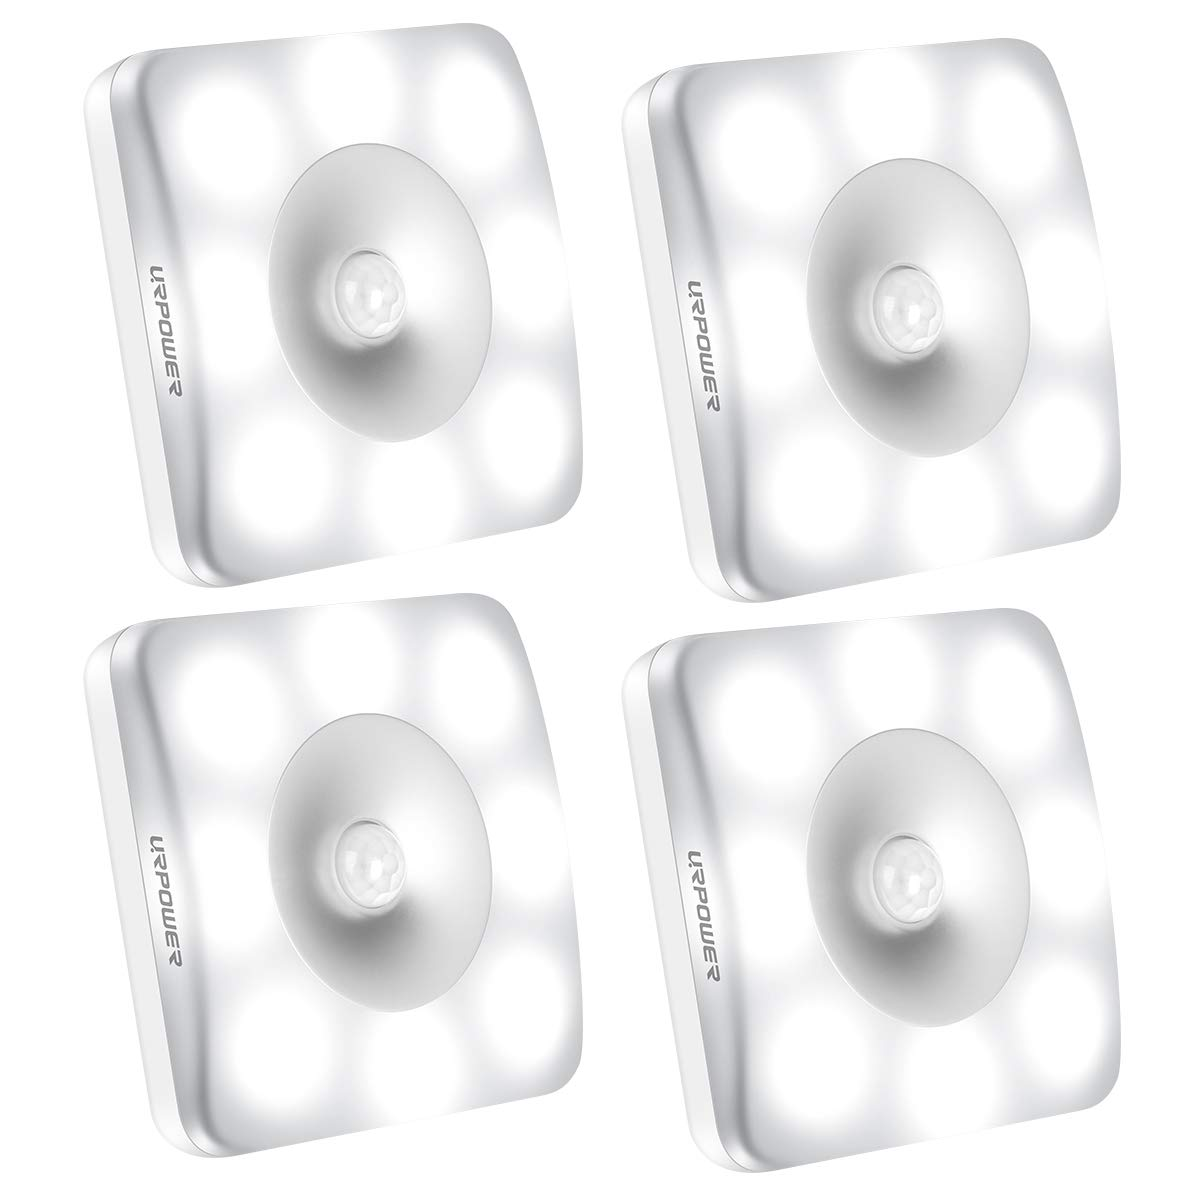 URPOWER Motion Sensor Light Closet Light Wireless Battery Operated Under Cabinet Lighting Stick-Anywhere Magnetic Motion Sensor Night Light Bathroom Wall Light for Closet Hallway Bookshelf(4 Pack)